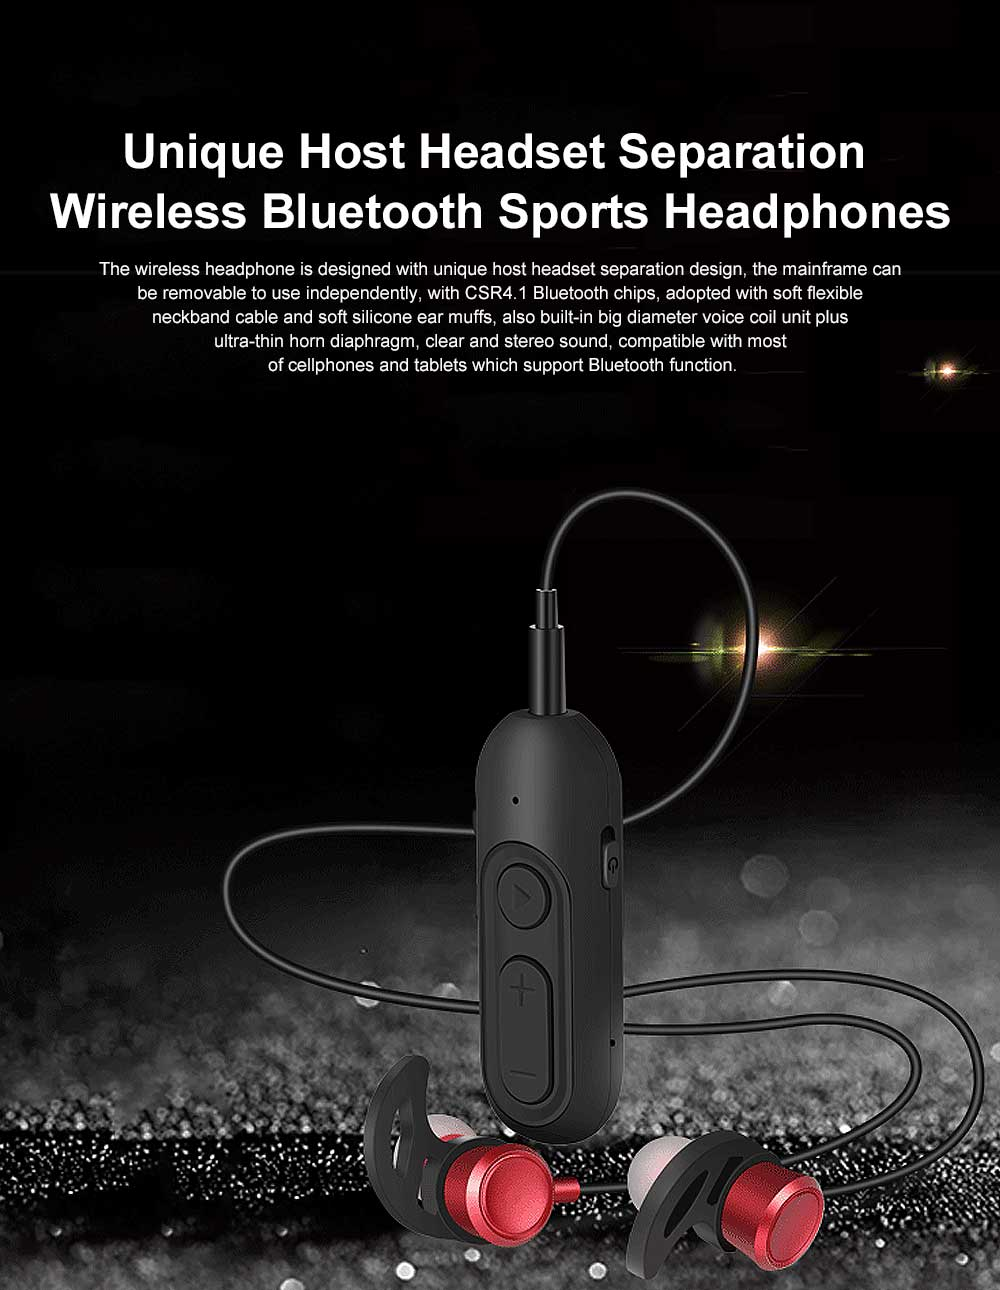 Unique Host Headset Separation Wireless CSR4.1 Bluetooth Earphone Headphones In-ear Neckband Headset Sports Supplies For iPhone Samsung 0